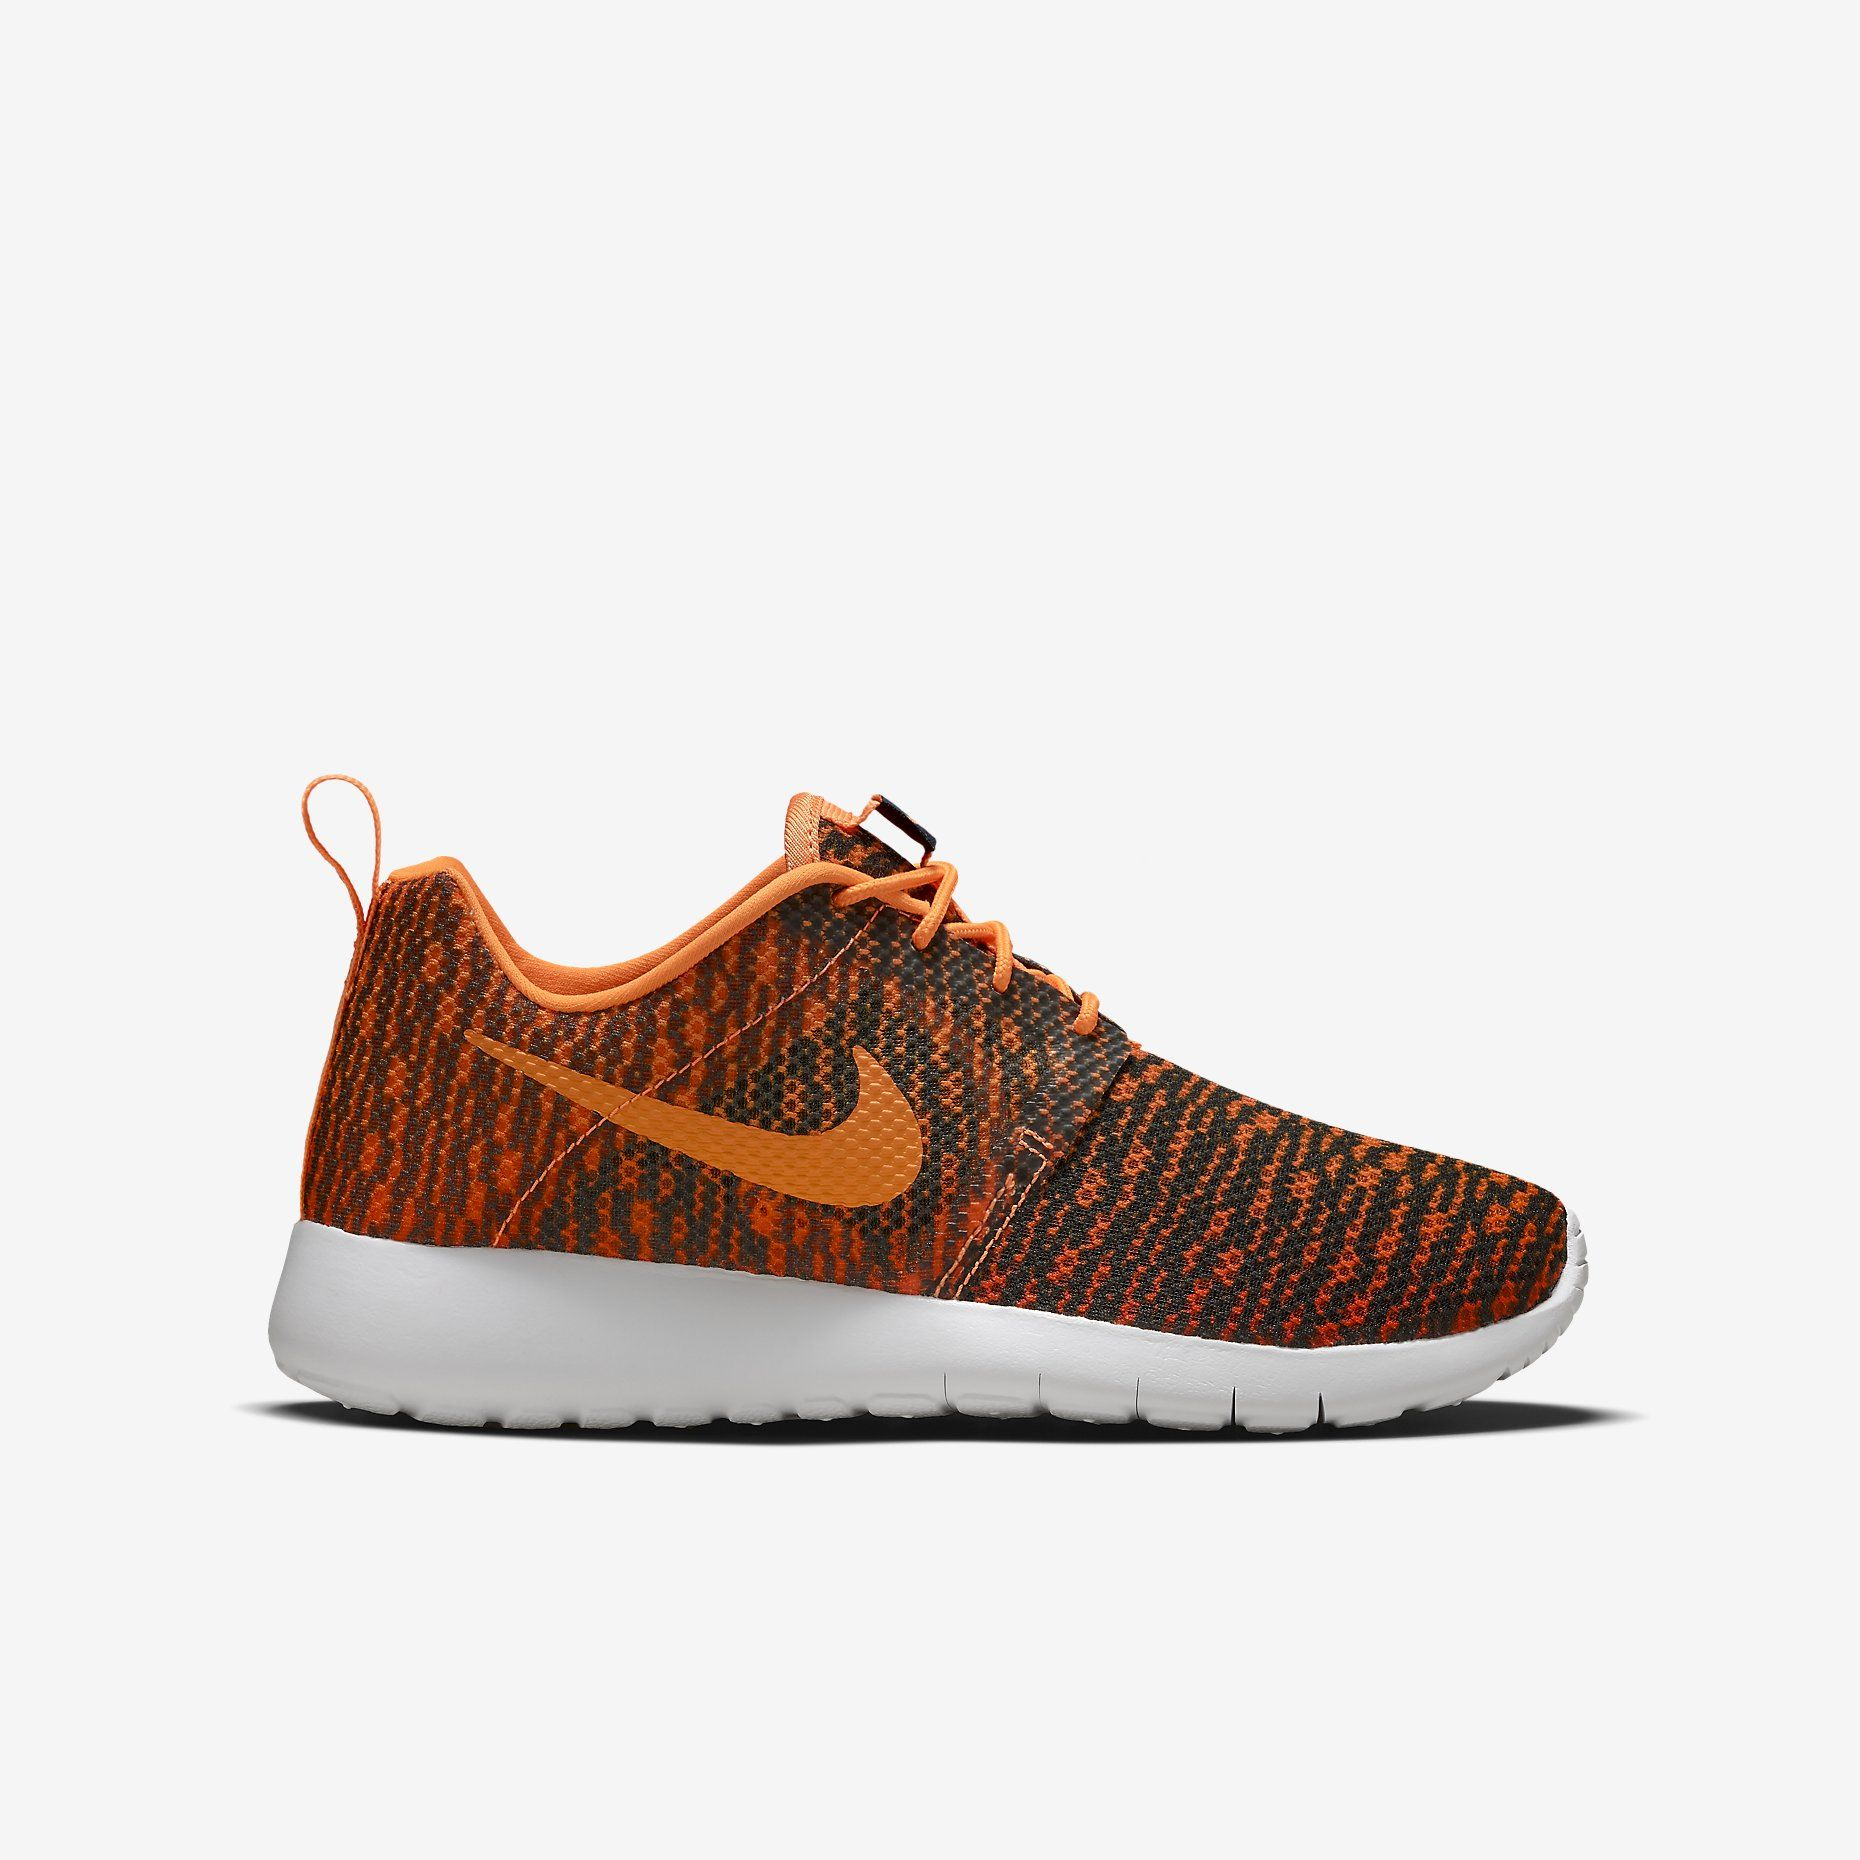 Nike Roshe One Flight Weight store